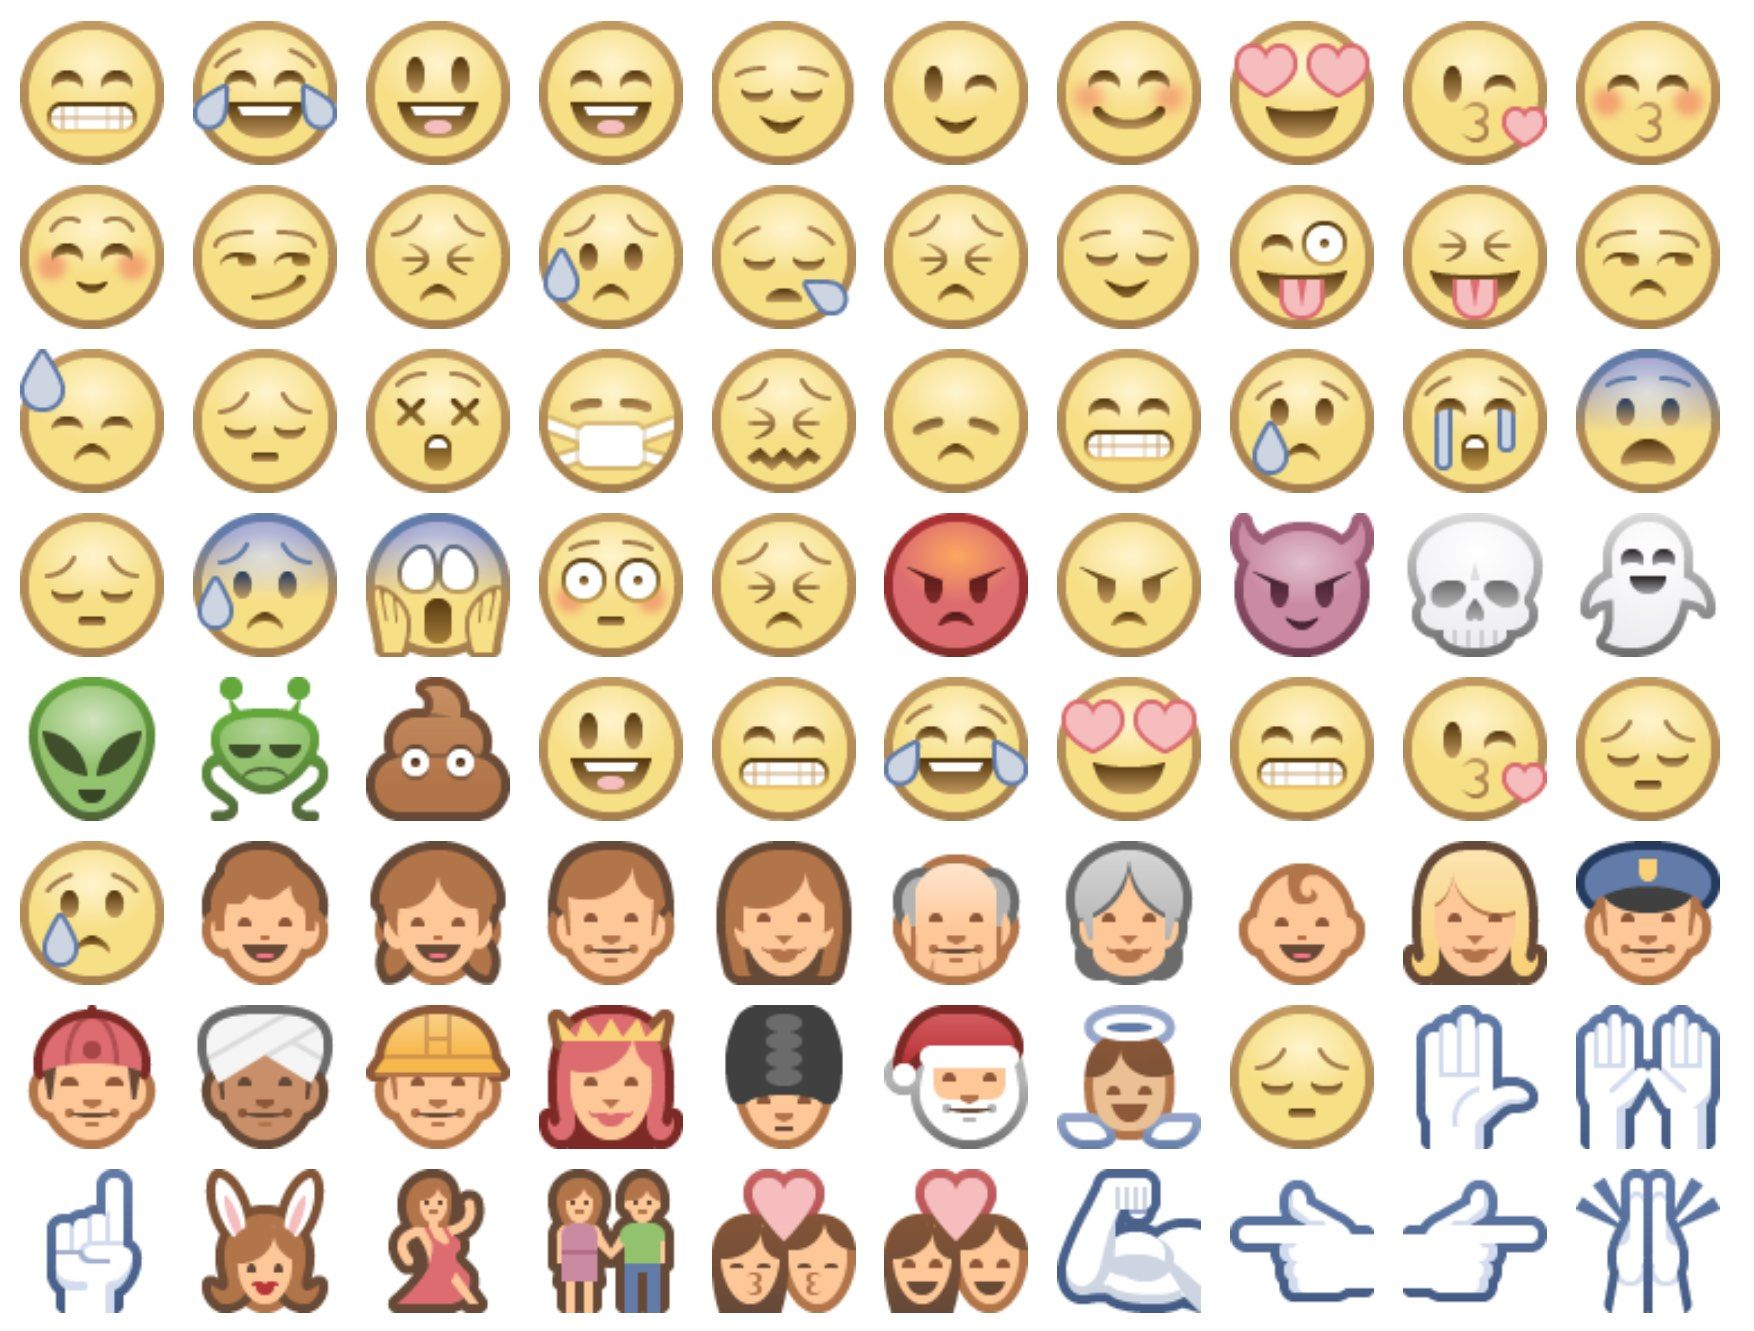 Facebook Launches Updated Emoji For Messenger With Diversity In Mind Emoji Guide New Emojis Facebook Messenger